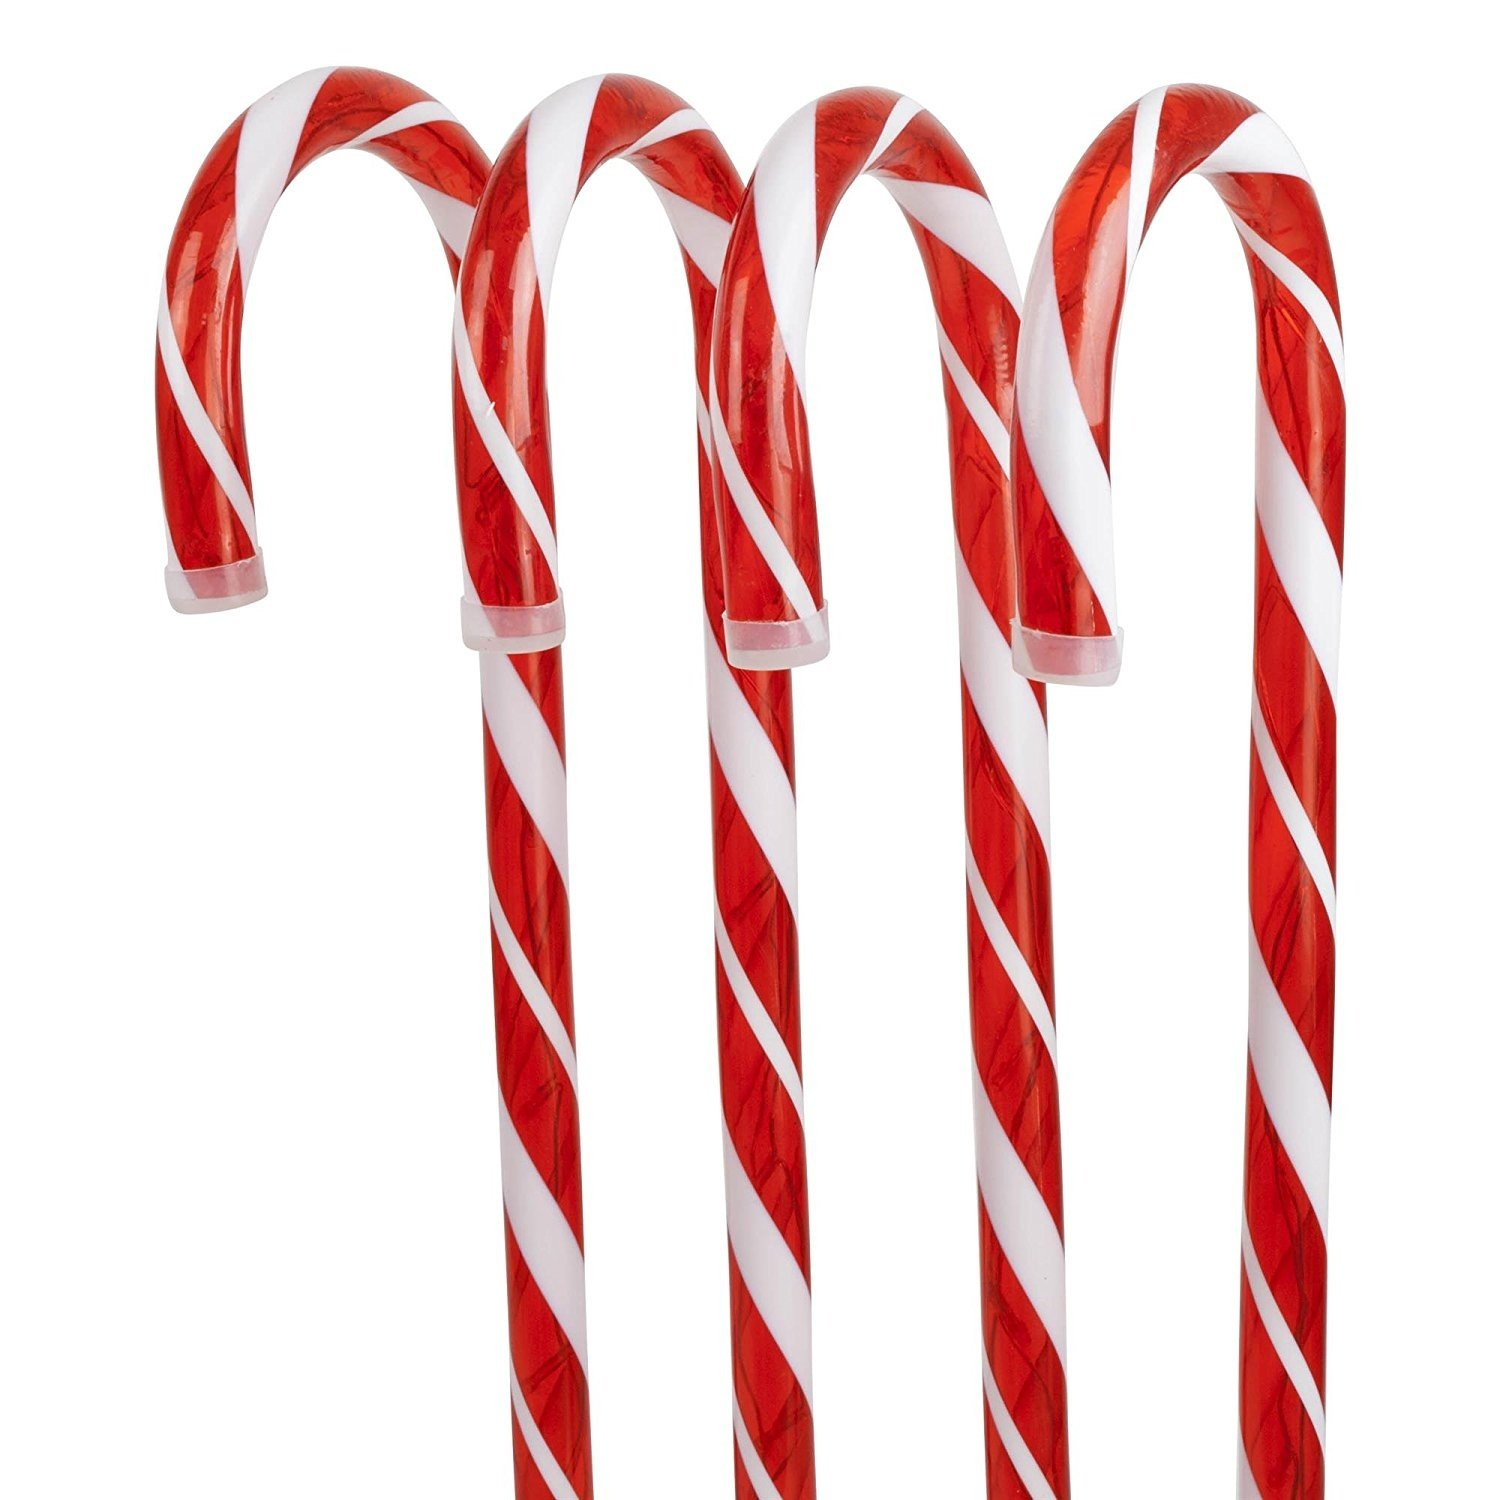 Festive Productions Candy Cane Stake Lights, 62 cm - Multi-Colour, Set of 4 P003987